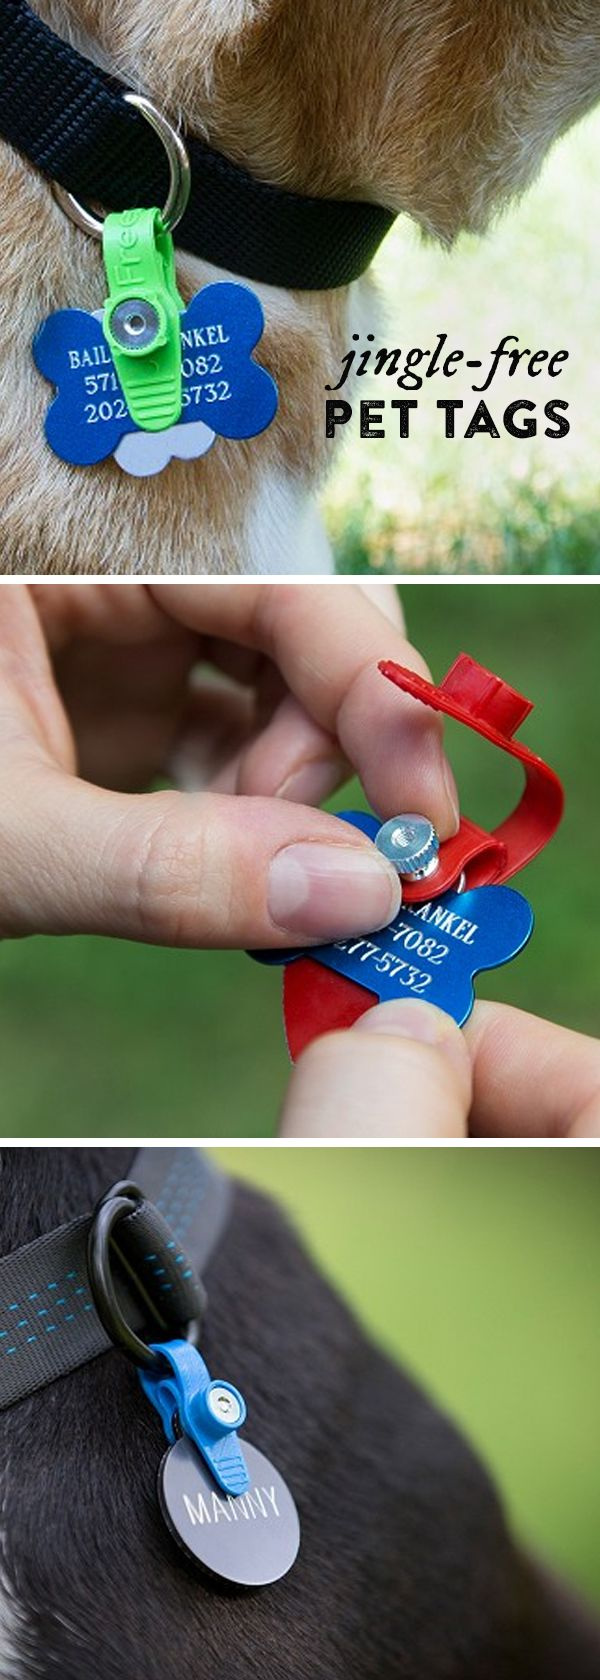 ID tags are important for your pets (especially if they ever get lost), but the jingle is just so annoying. FreezeTag is a durable pet tag silencer that's waterproof, resists odors, and stops that noise. Made in the USA, FreezeTag holds up to four tags and easily attaches to your pet's collar.